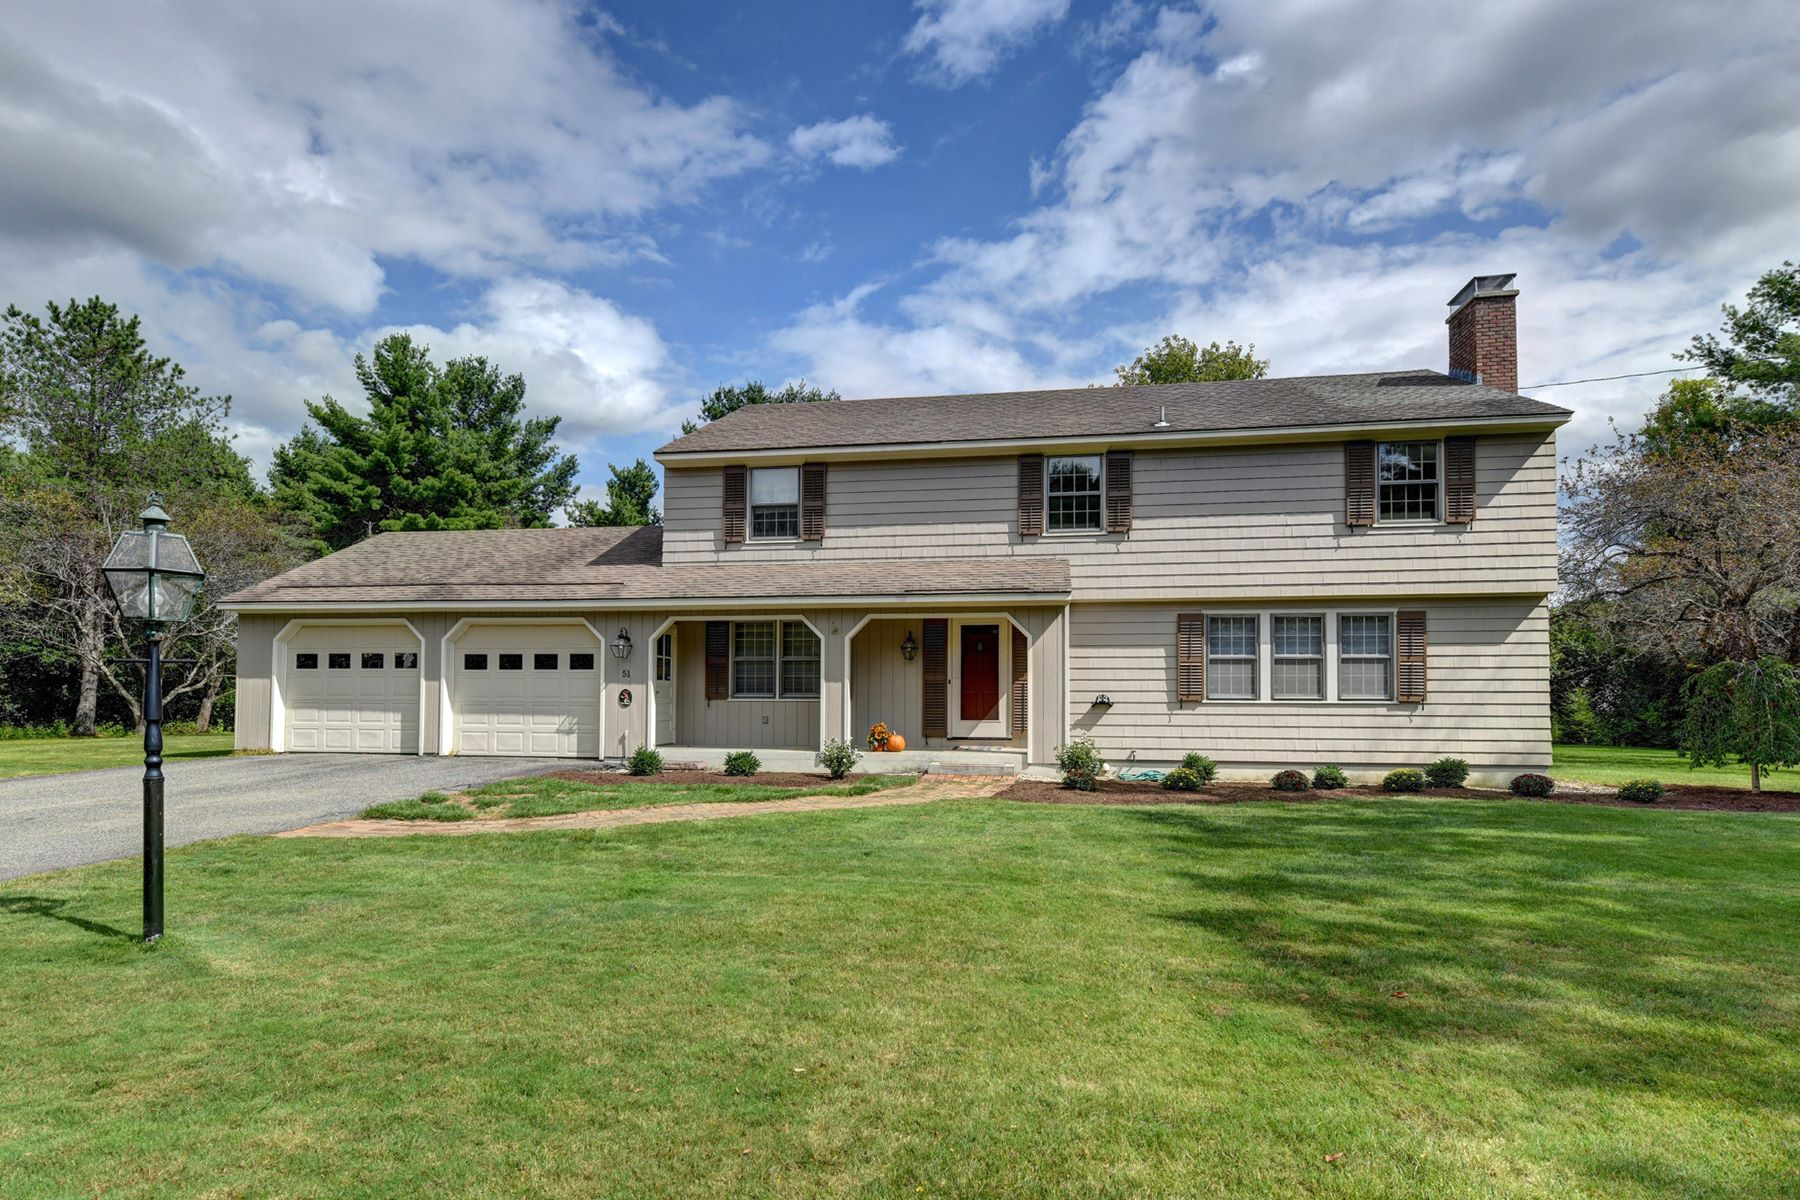 Single Family Homes pour l Vente à Classic Forever Home in Prime Southeast Pittsfield Location! 51 Stonehenge Rd Pittsfield, Massachusetts 01201 États-Unis